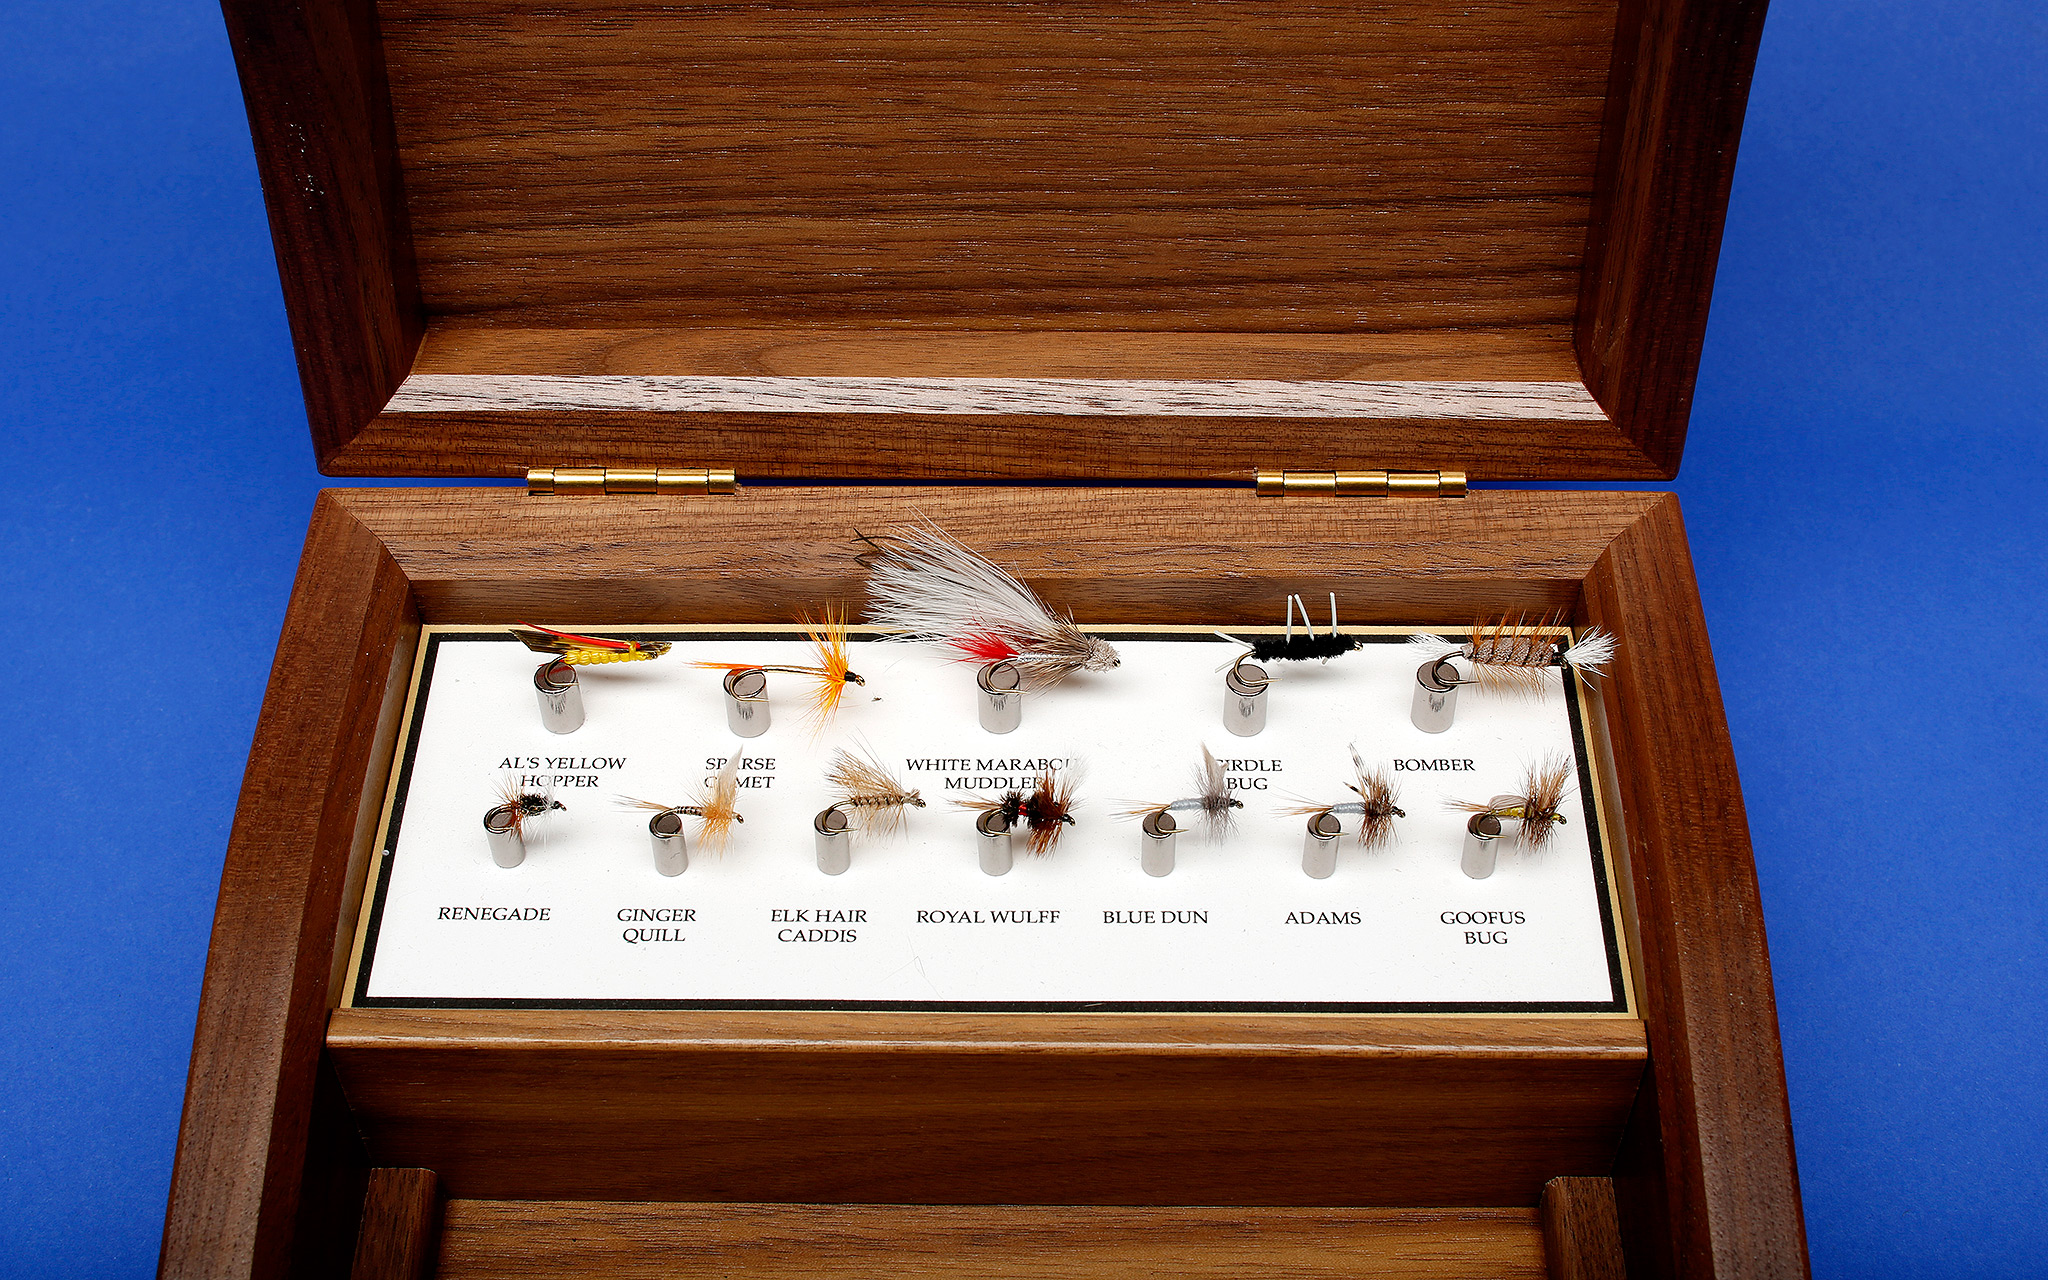 Tom Morgan's favorite flies